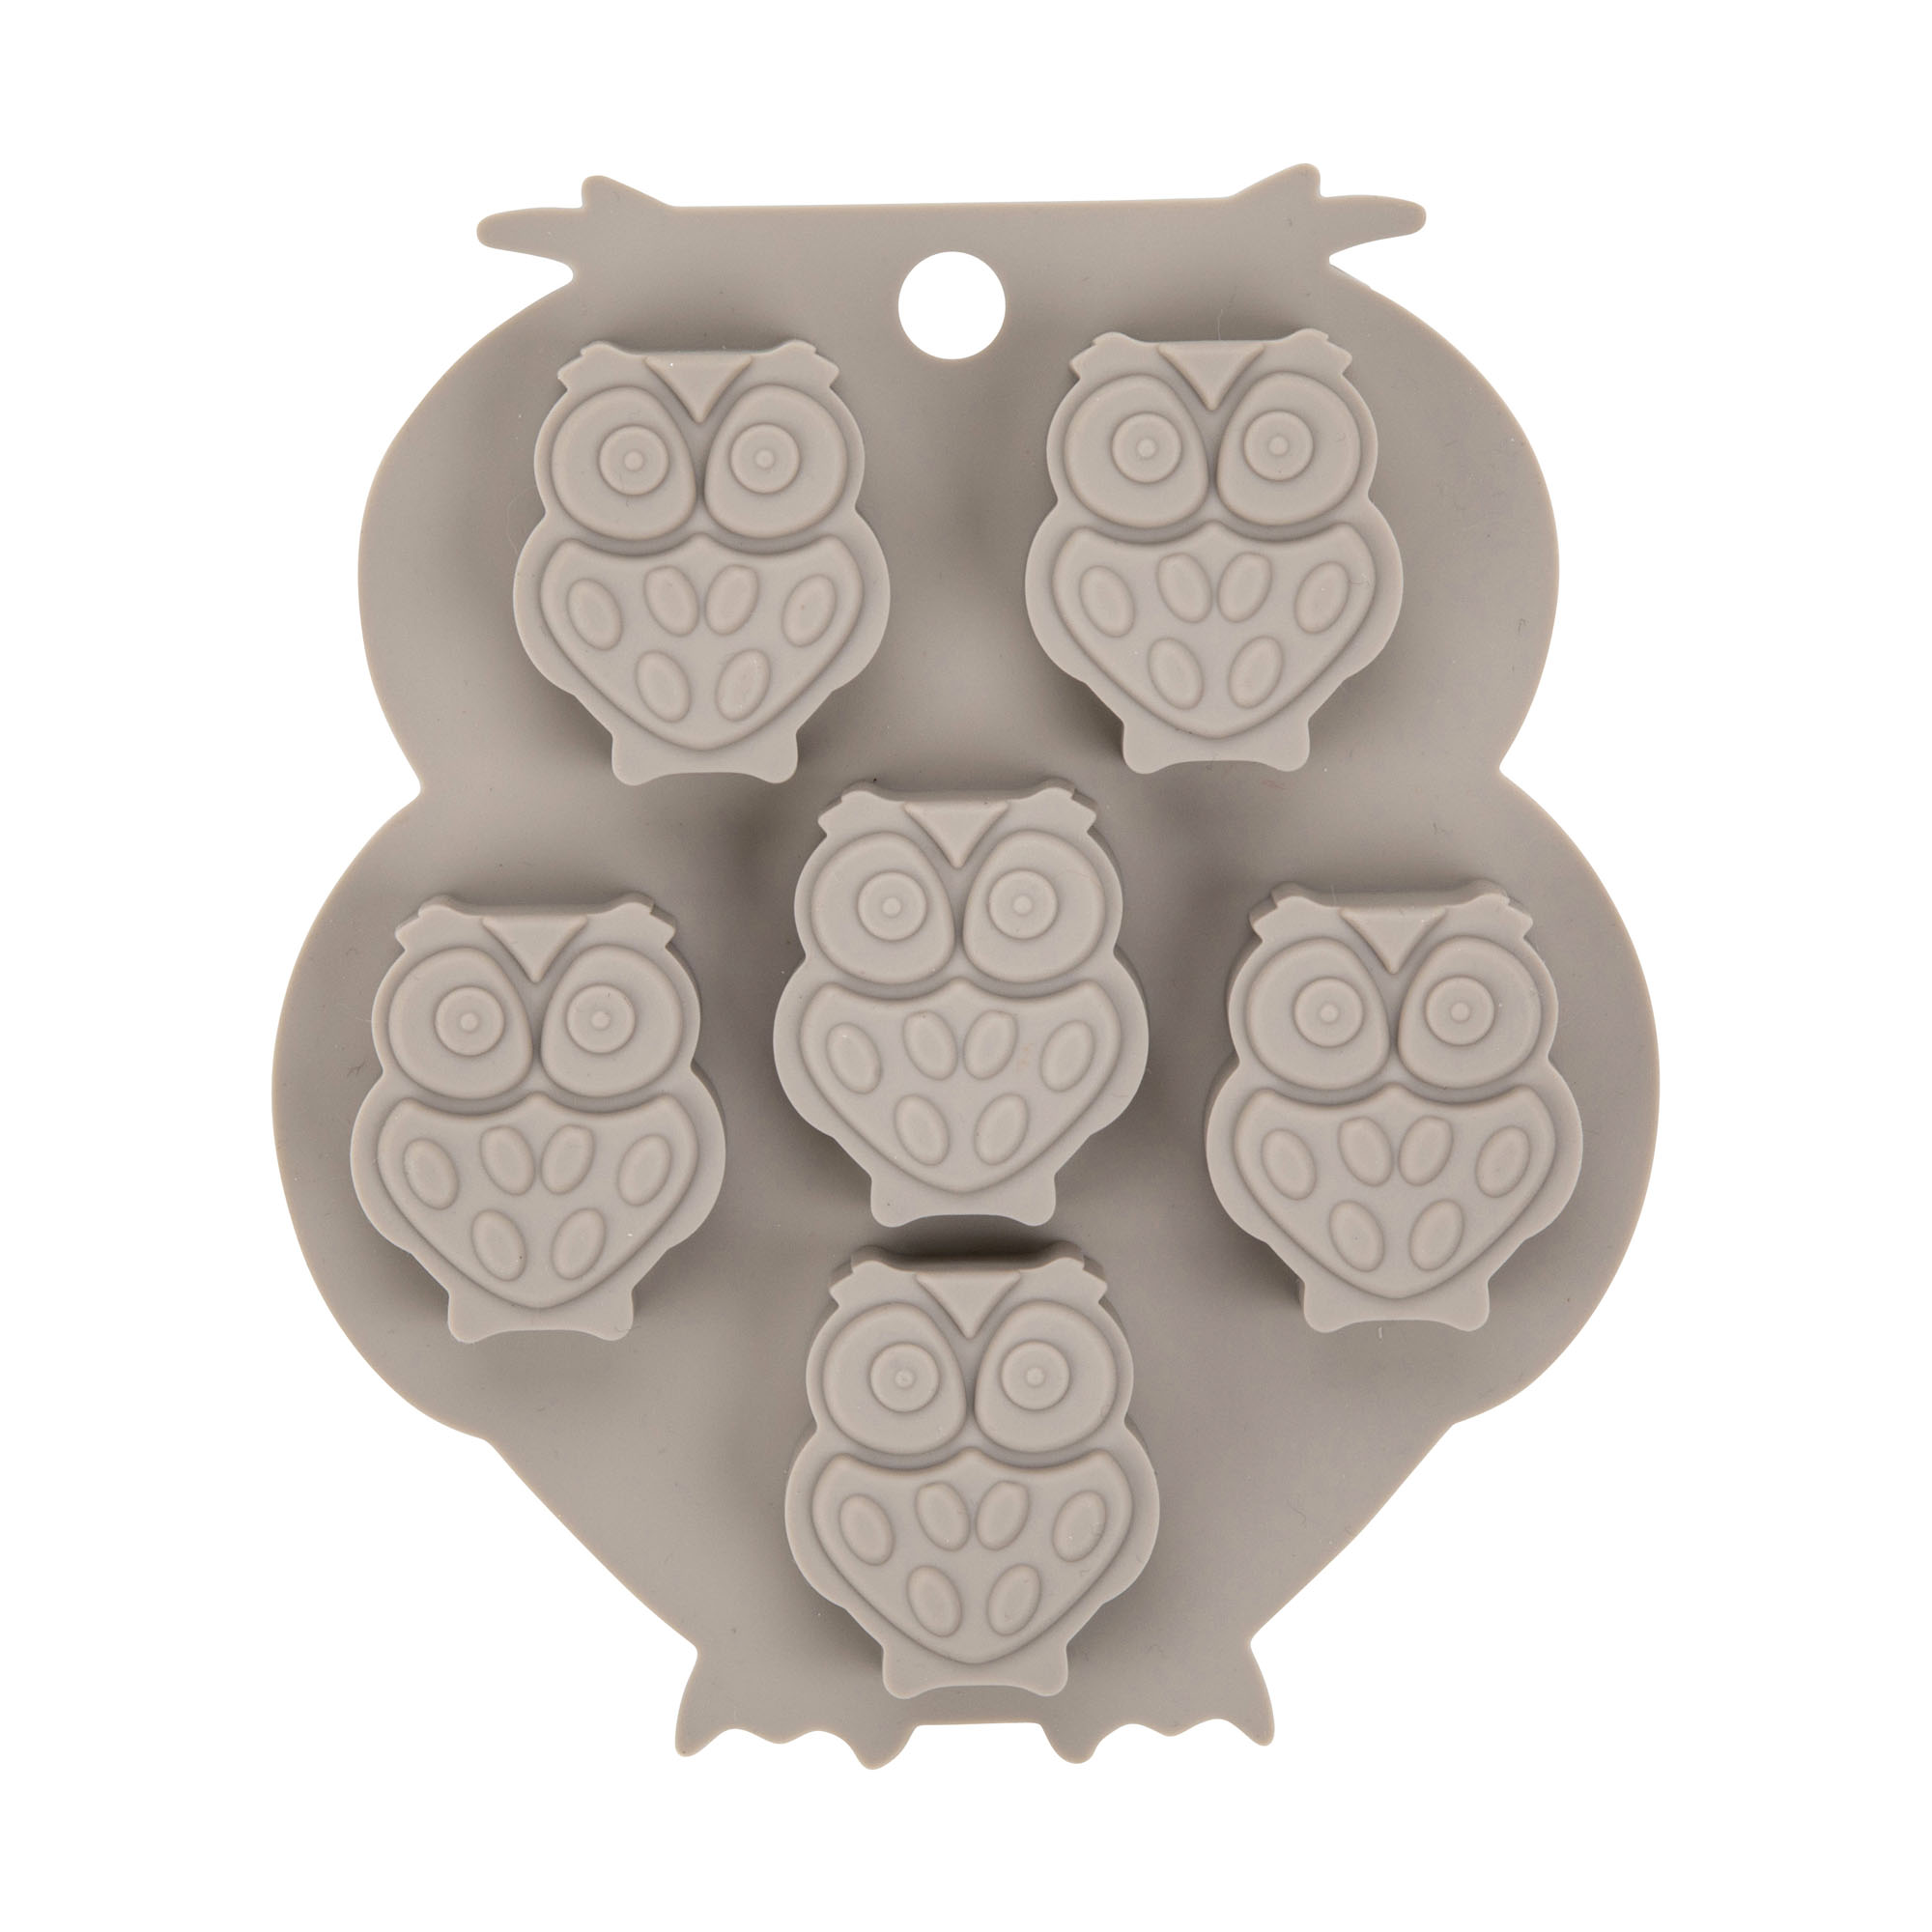 Owl shaped ice cube tray